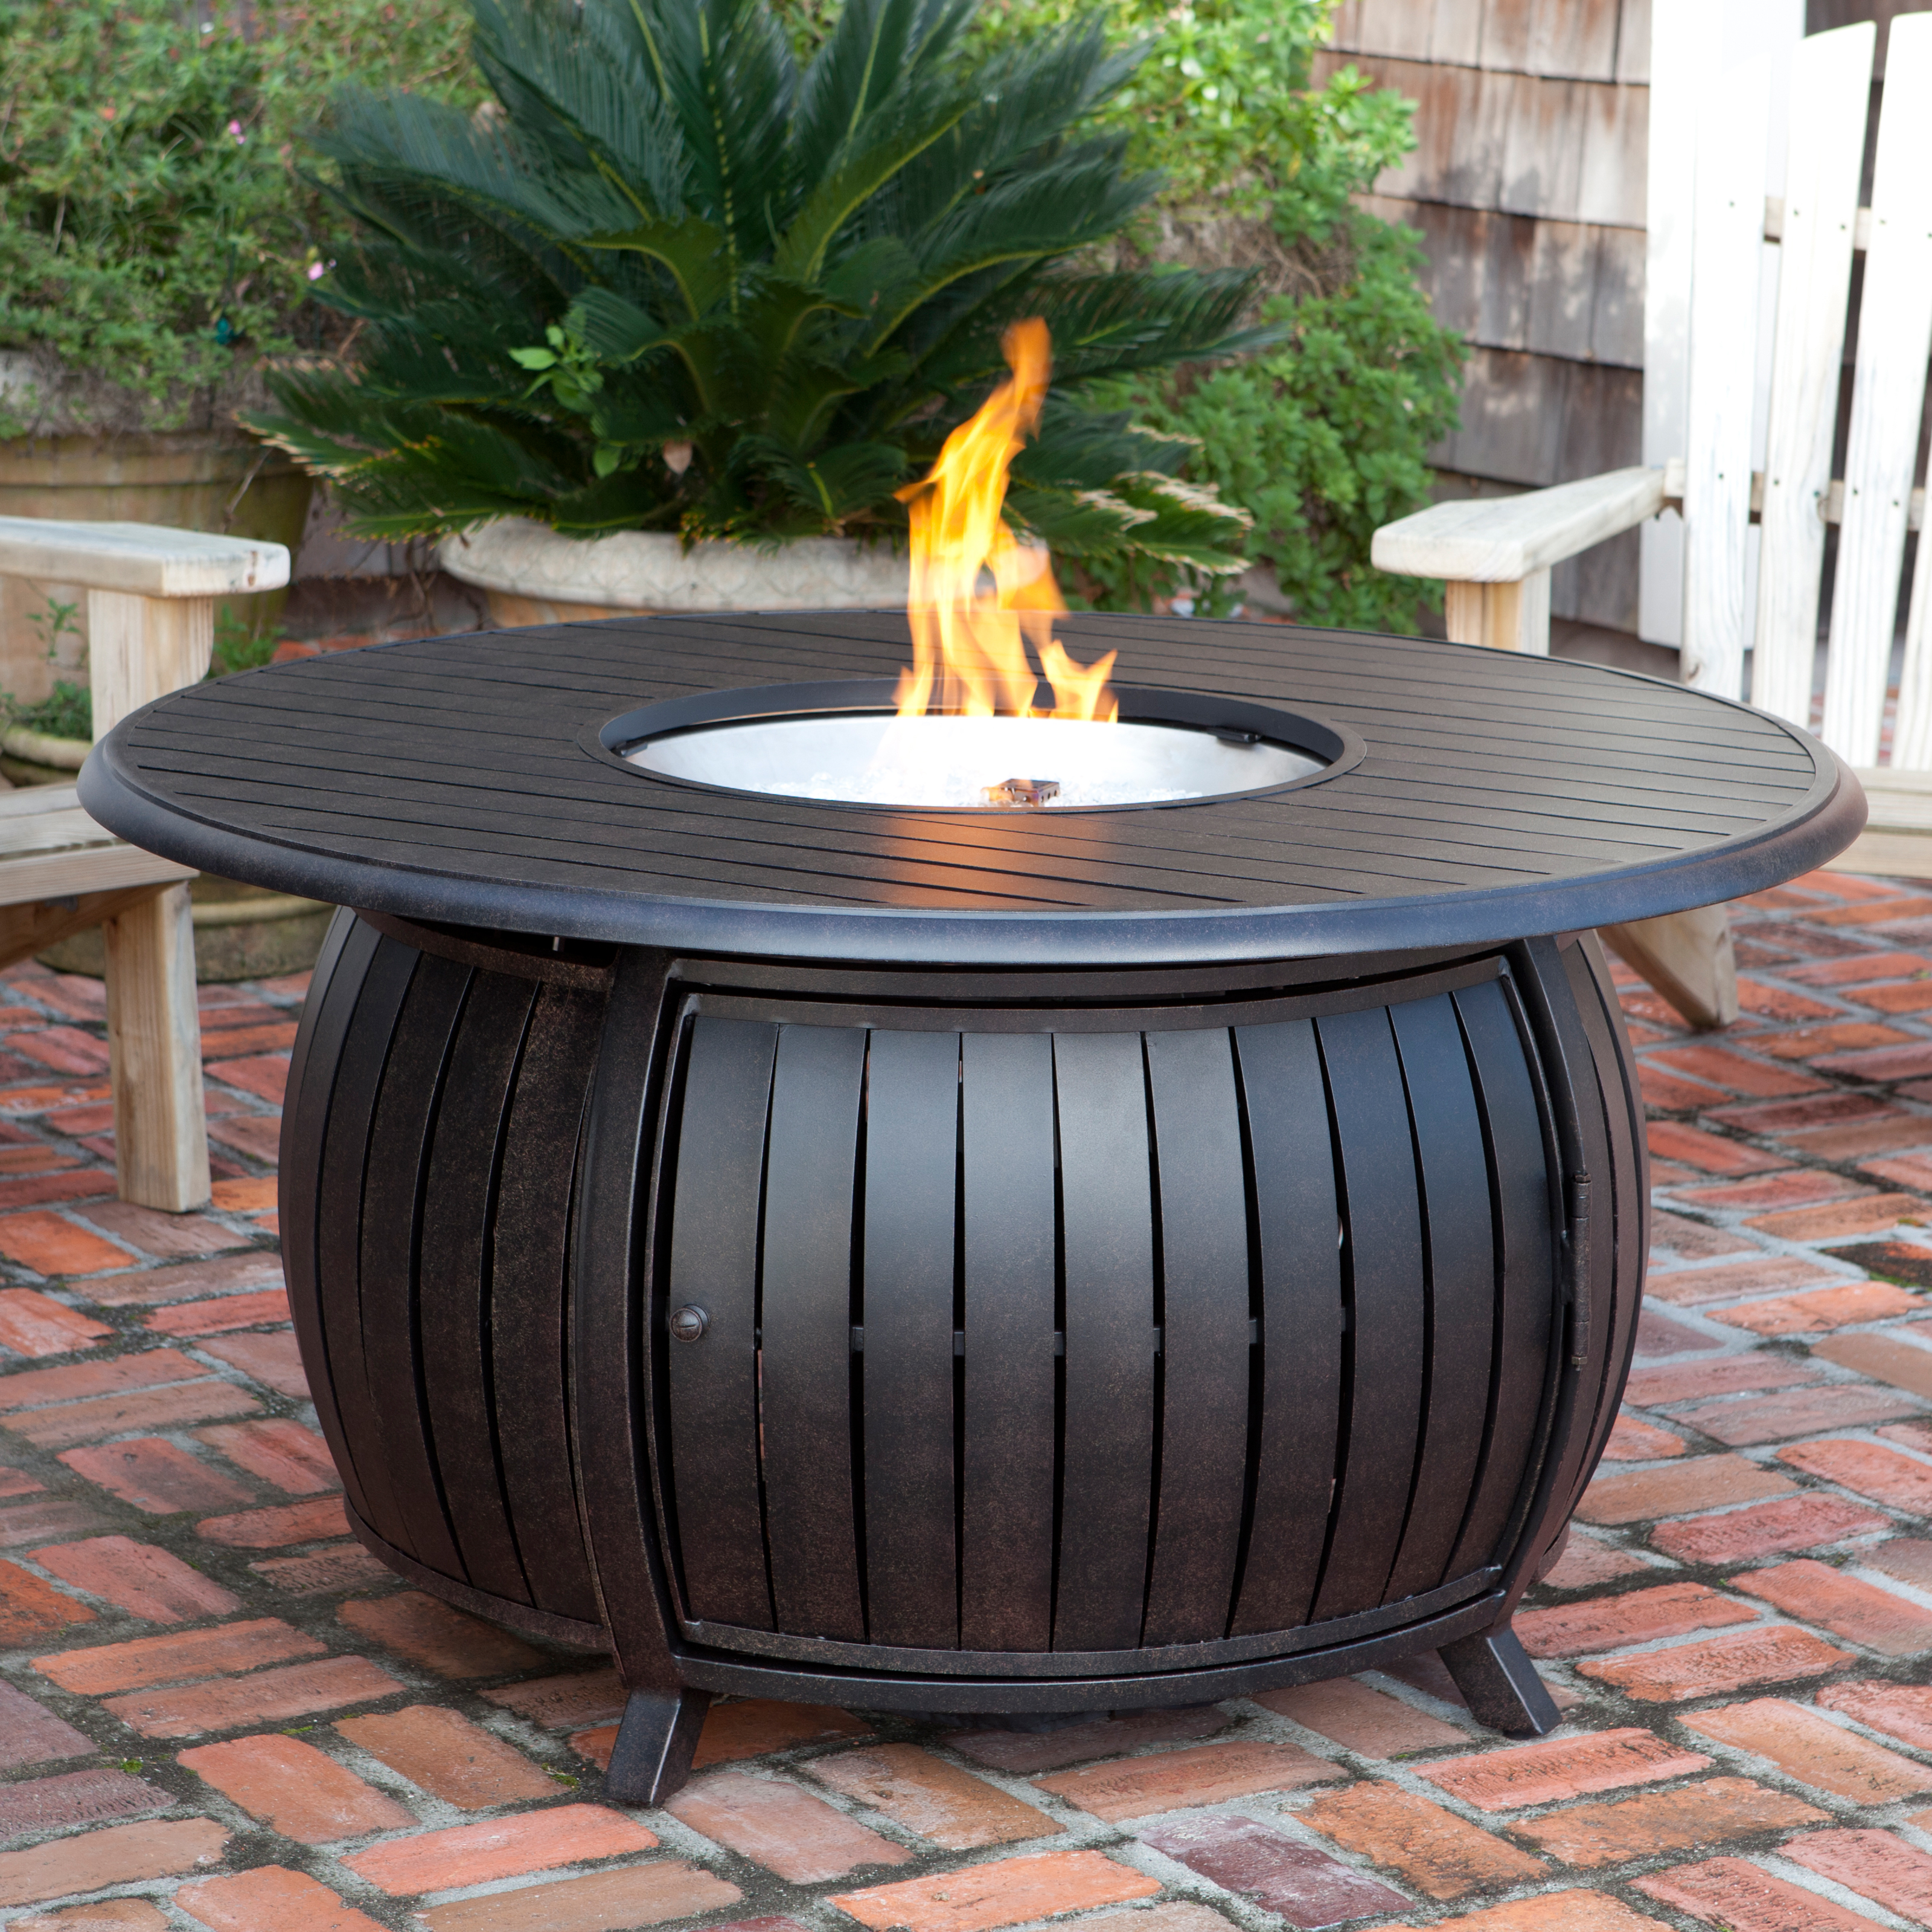 Fire Sense Round Fire Pit Table With Cover Fire Pits At